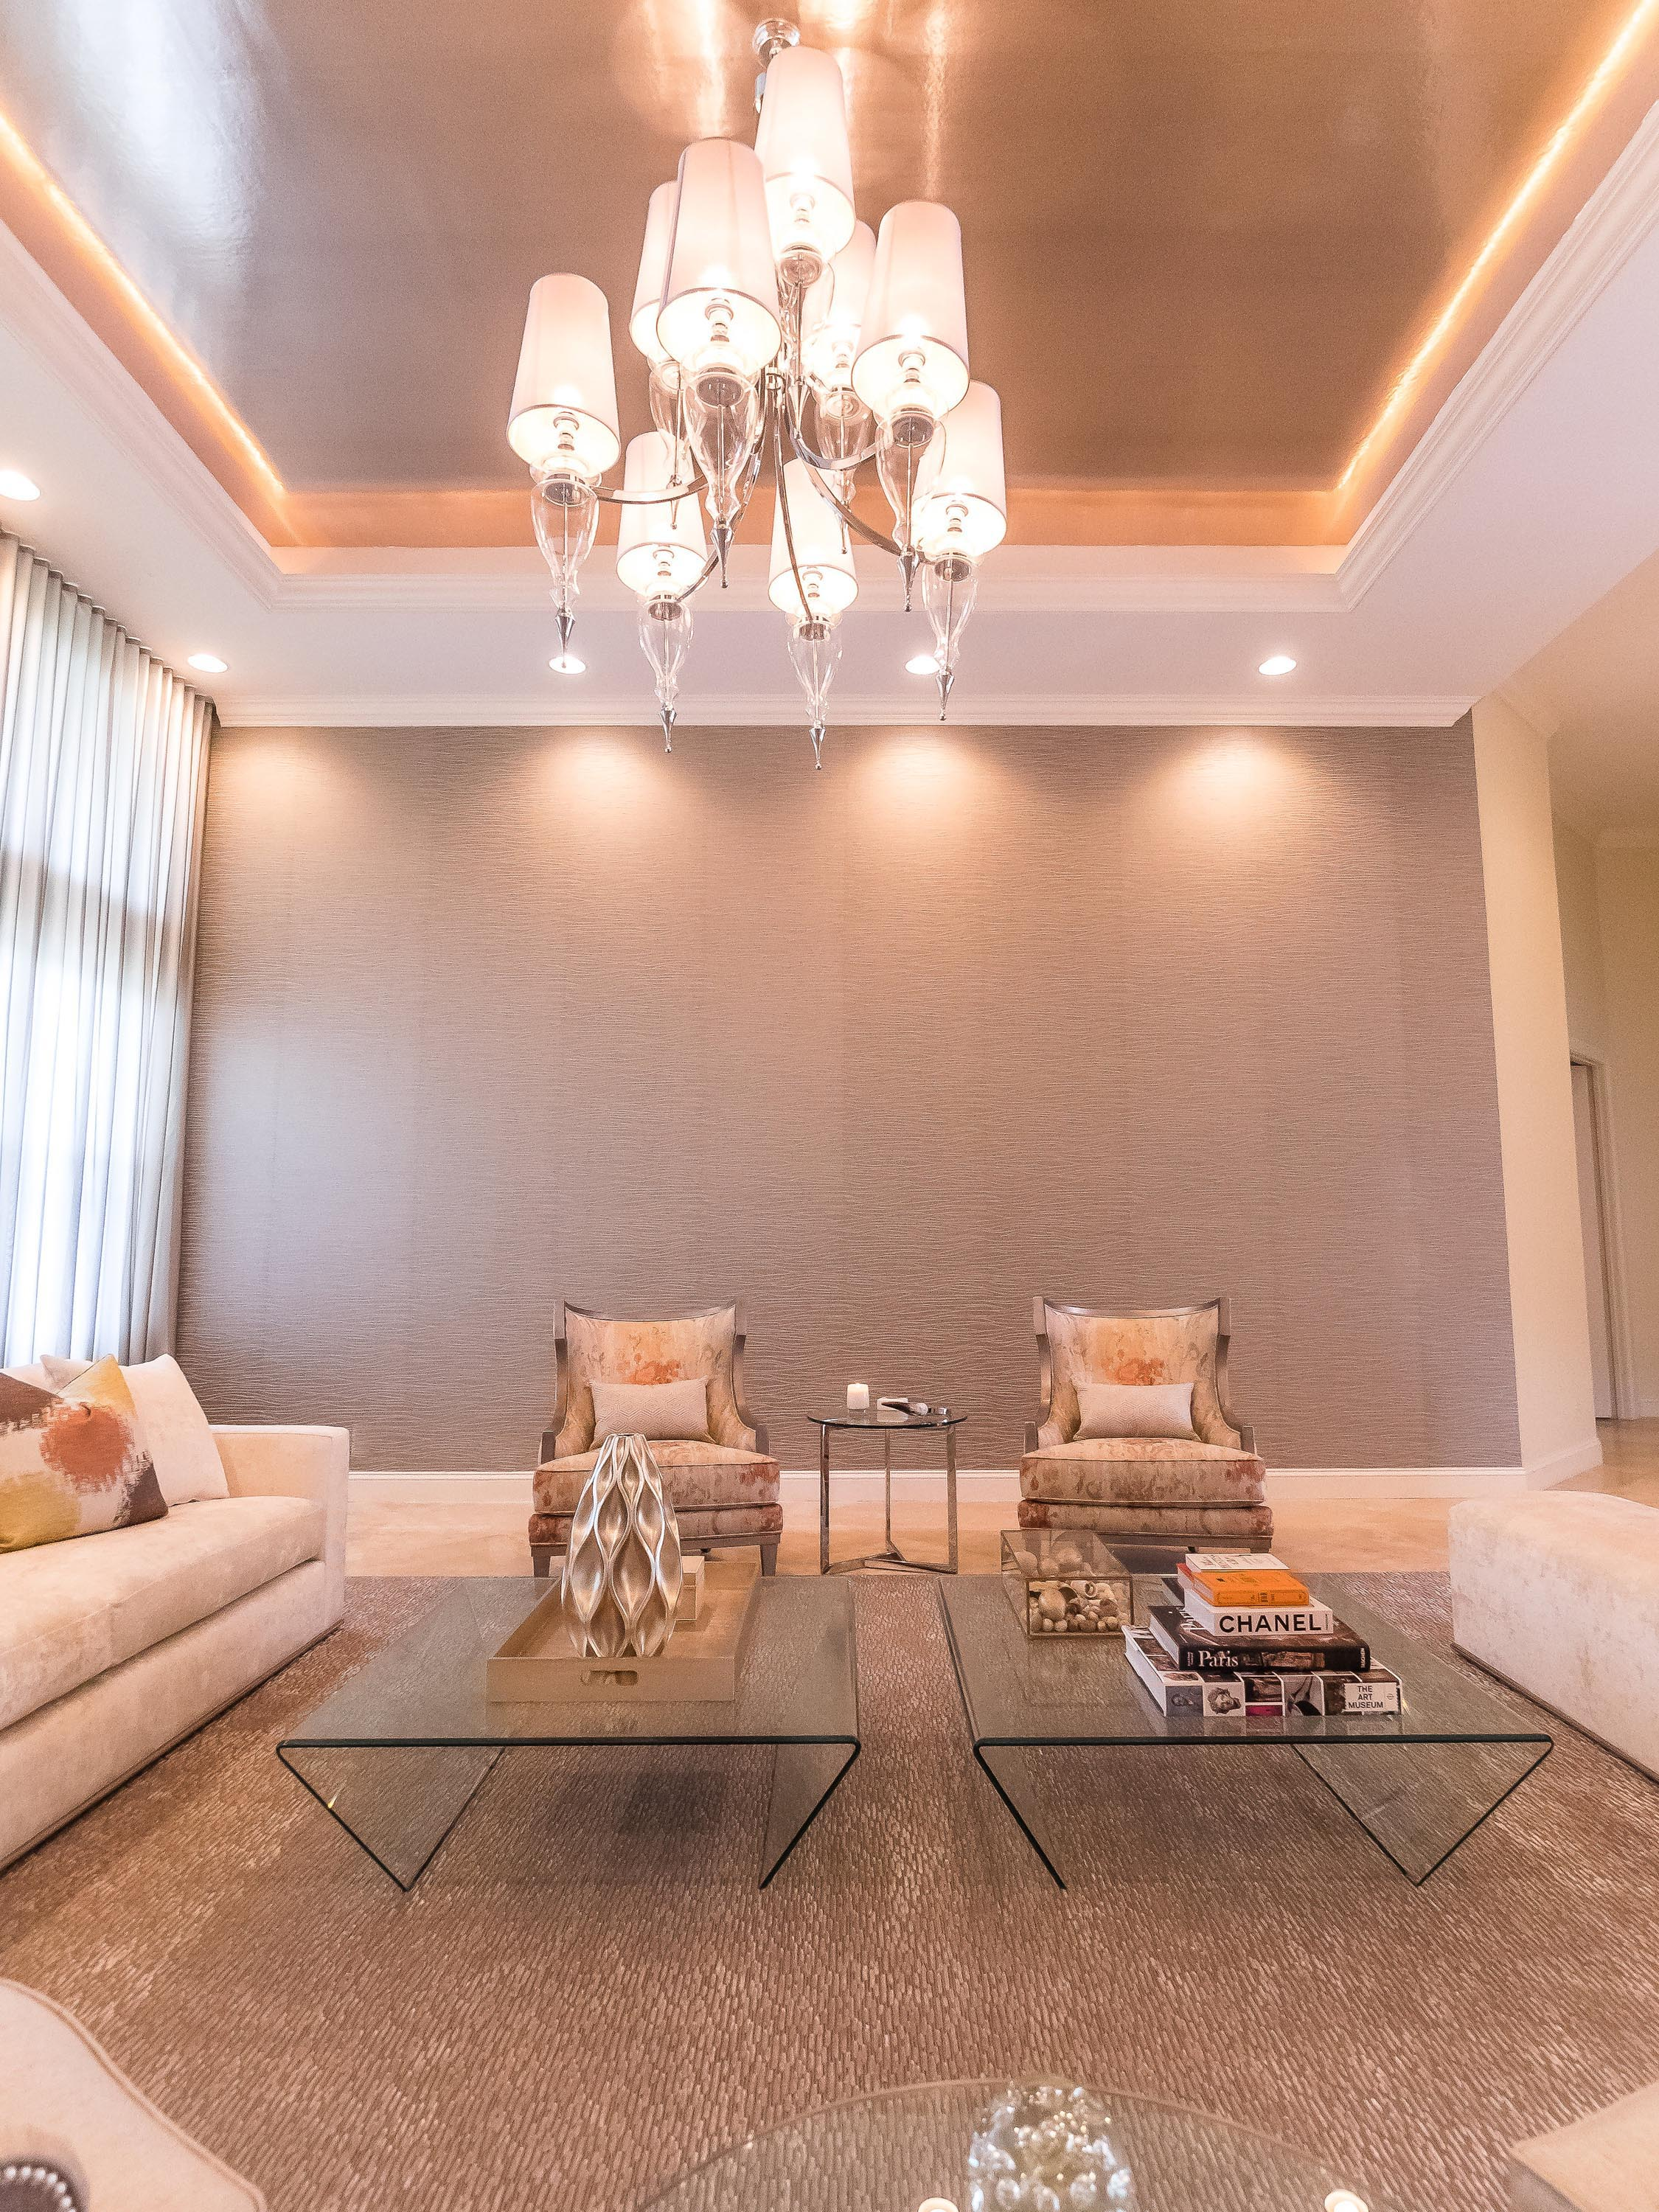 Living room with armchairs, sofa, carpet, custom glass tables and ceiling lamps